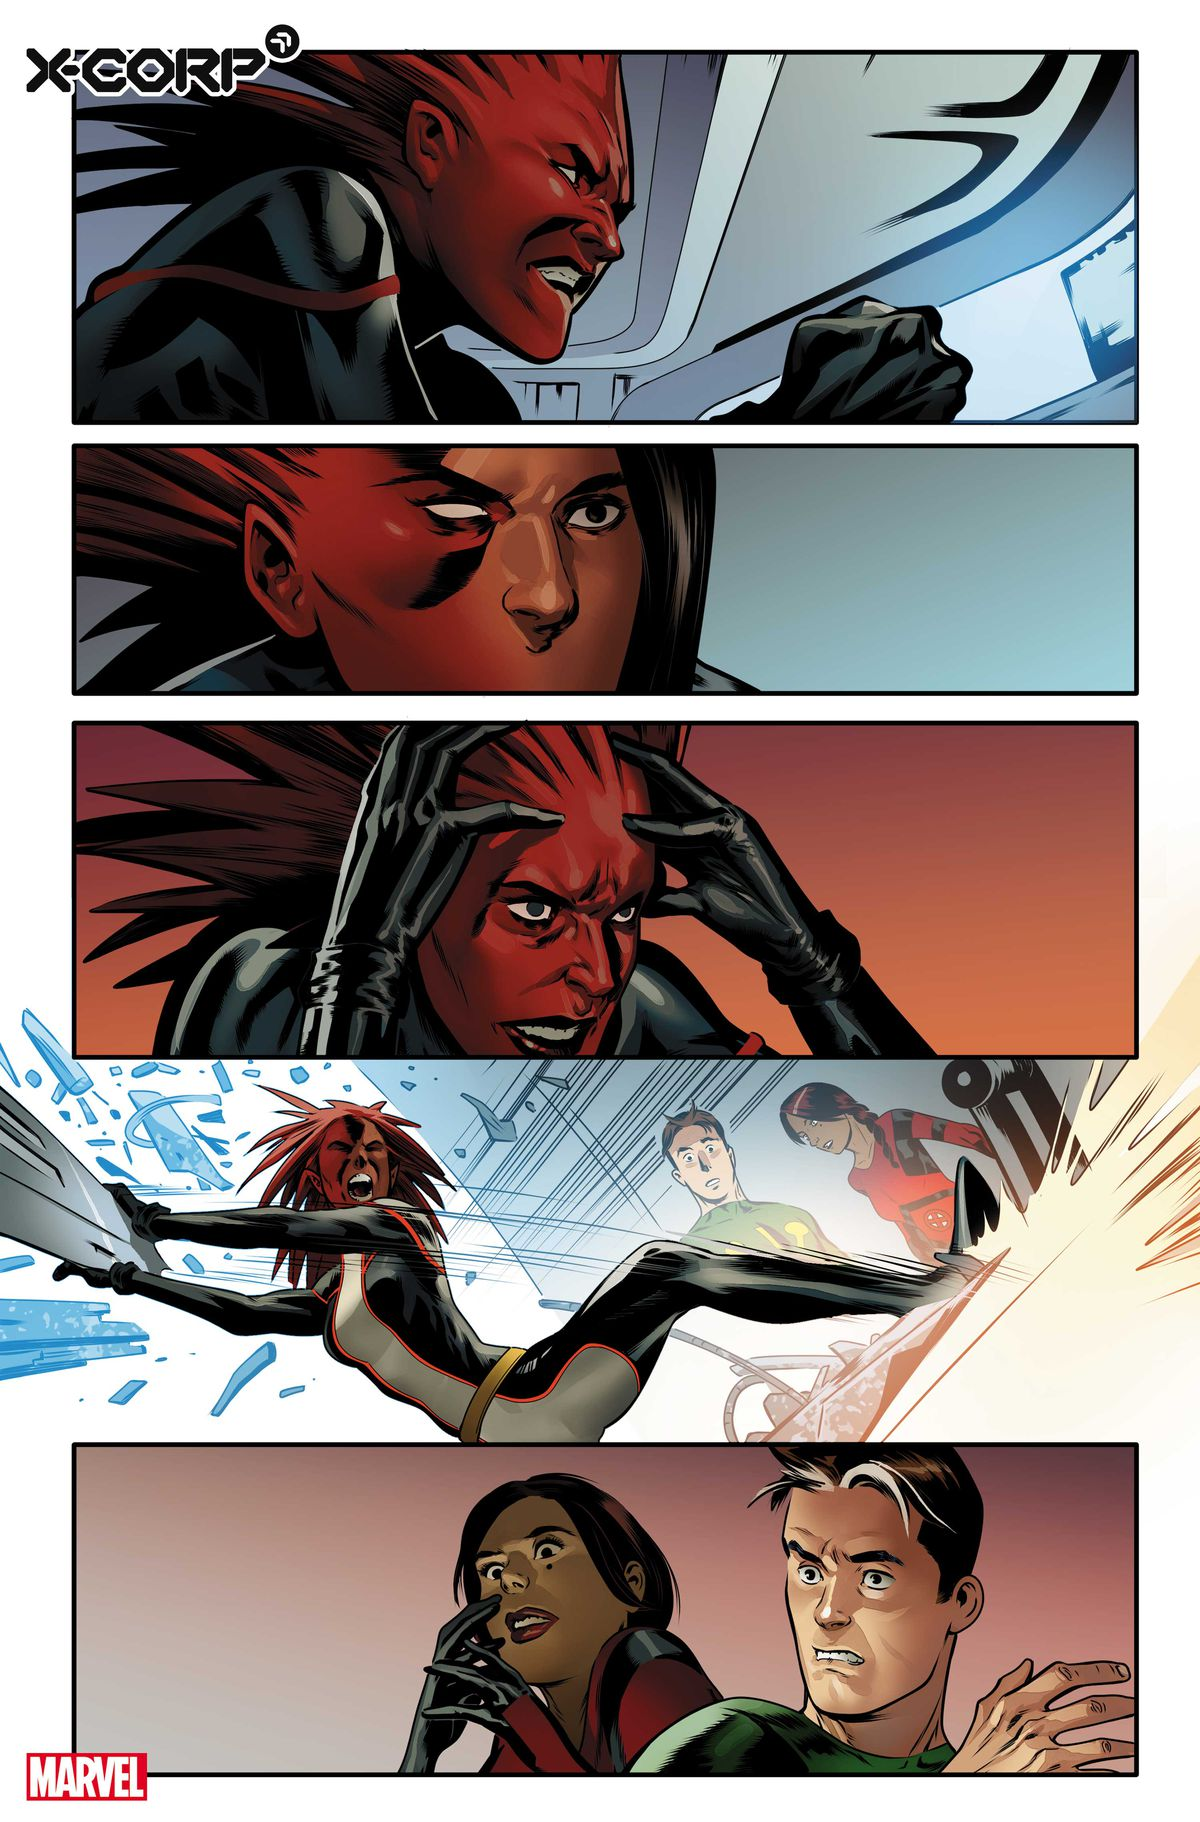 Monet St. Croix wrecks a computer in front of Trinary and Multiple Man in preview art for X-Corp #1 , Marvel Comics (2021)